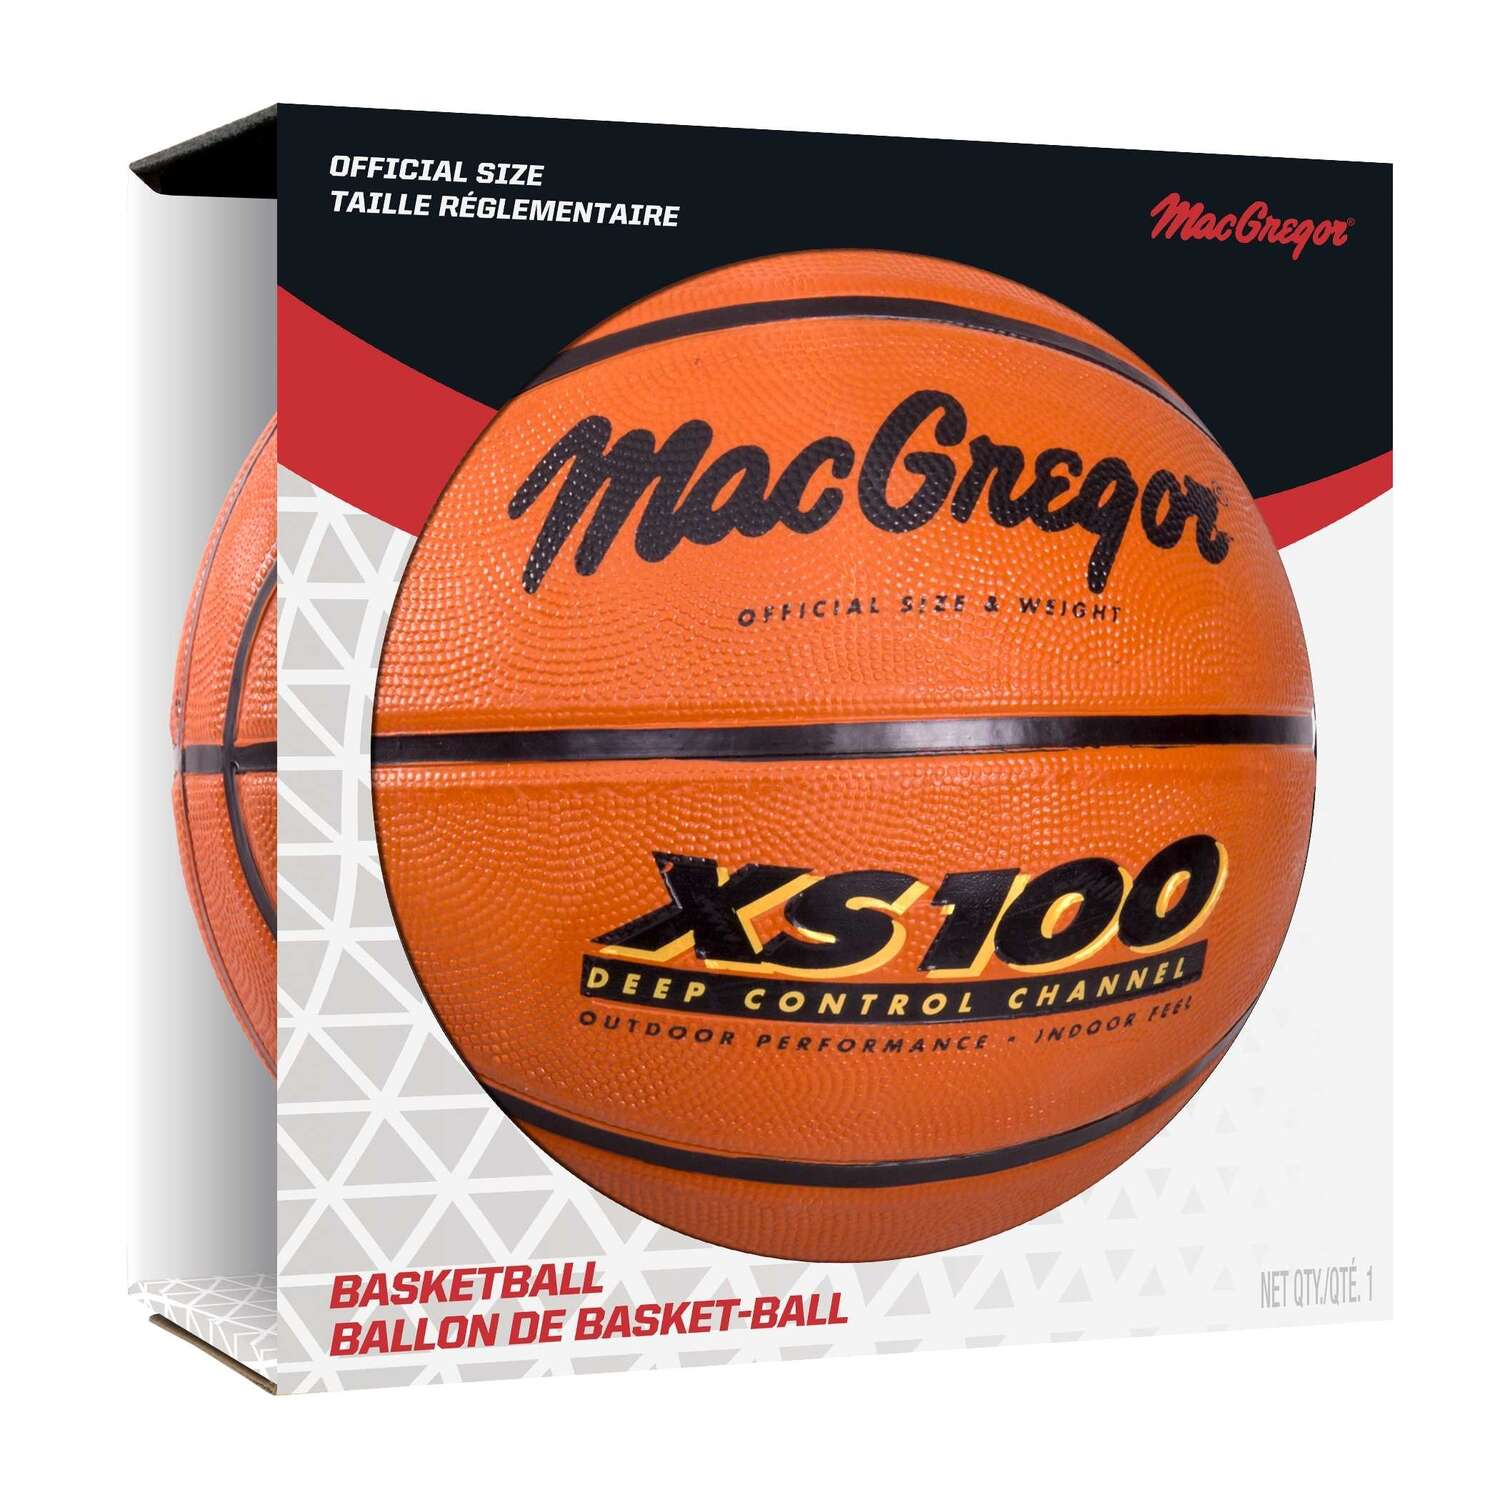 MacGregor  XS100  Playground Ball  6  8 Years and up year